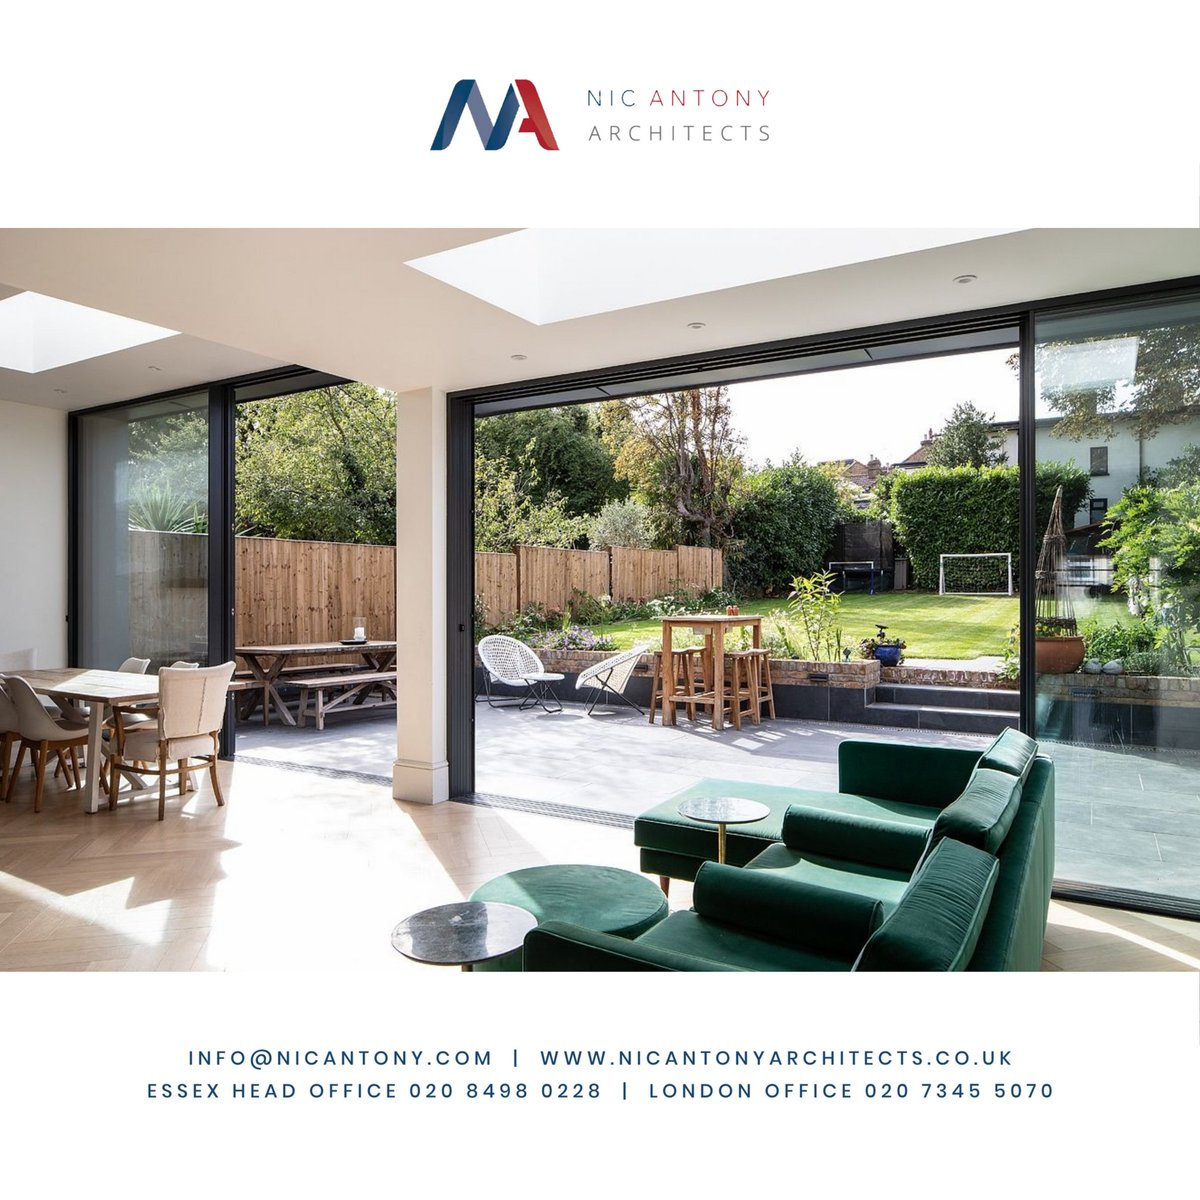 Natural light with large glazed patio doors and flat openable roof lights provide good natural light and ventilation. . . #essex #london #buckhursthill #loughton #chigwell #loughtonmums #woodfordgreen #wanstead #architecture #design #interiordesign #property #propertydevelopment